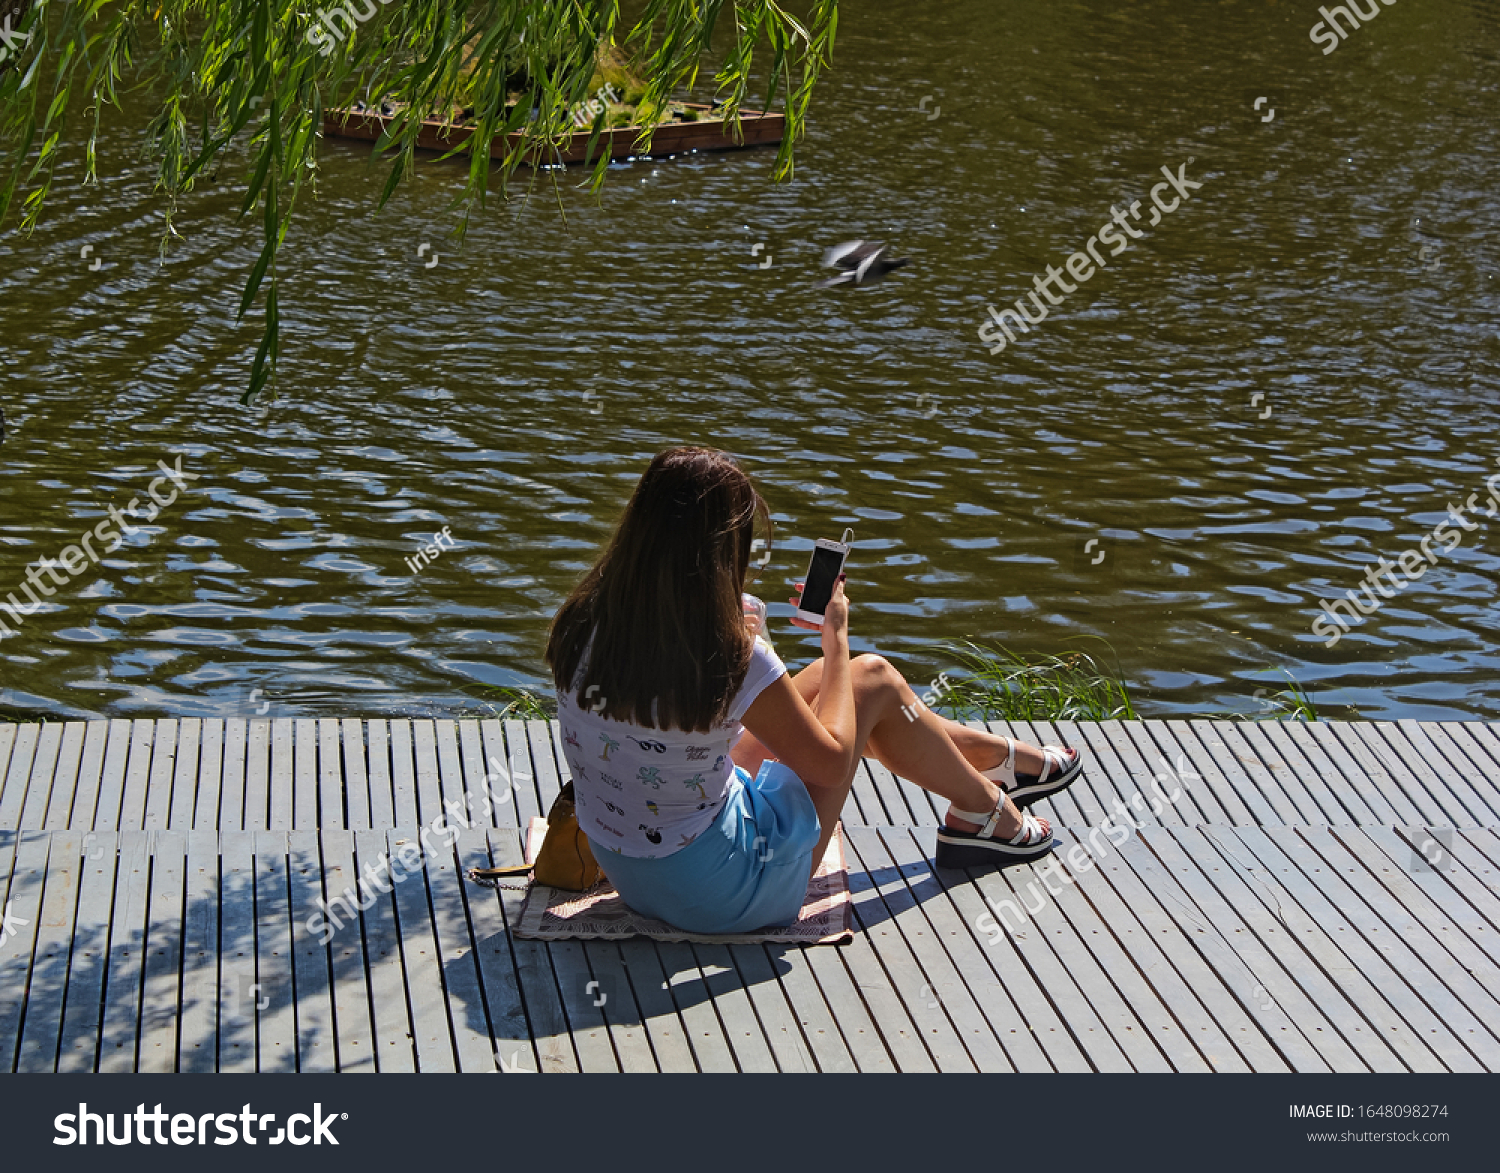 stock-photo-a-girl-in-summer-clothes-sit